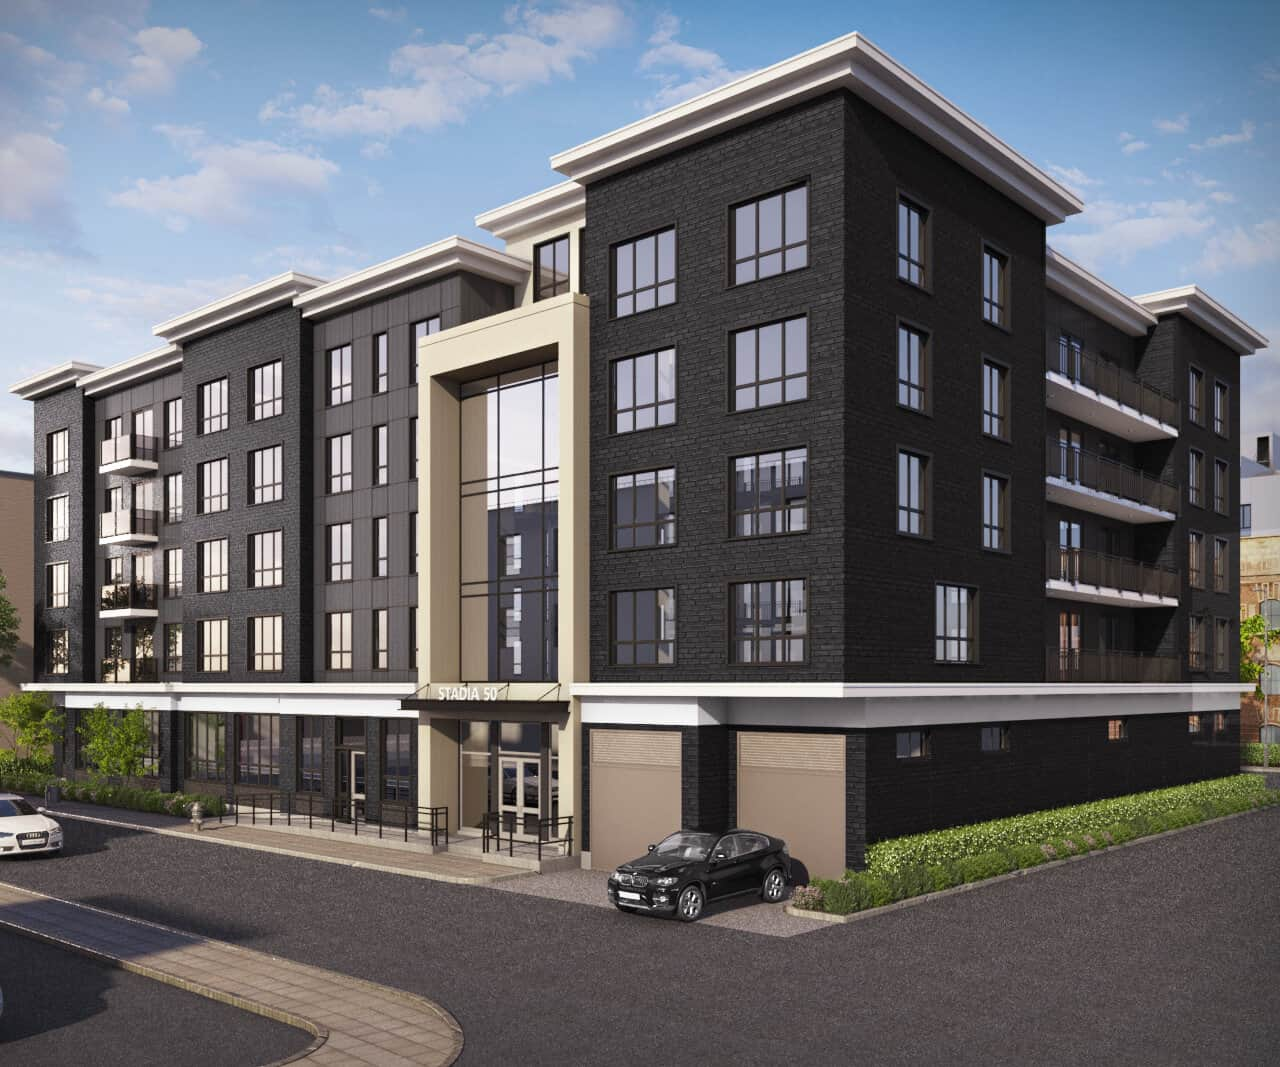 Stadia 50 | Brighton New Construction Condos